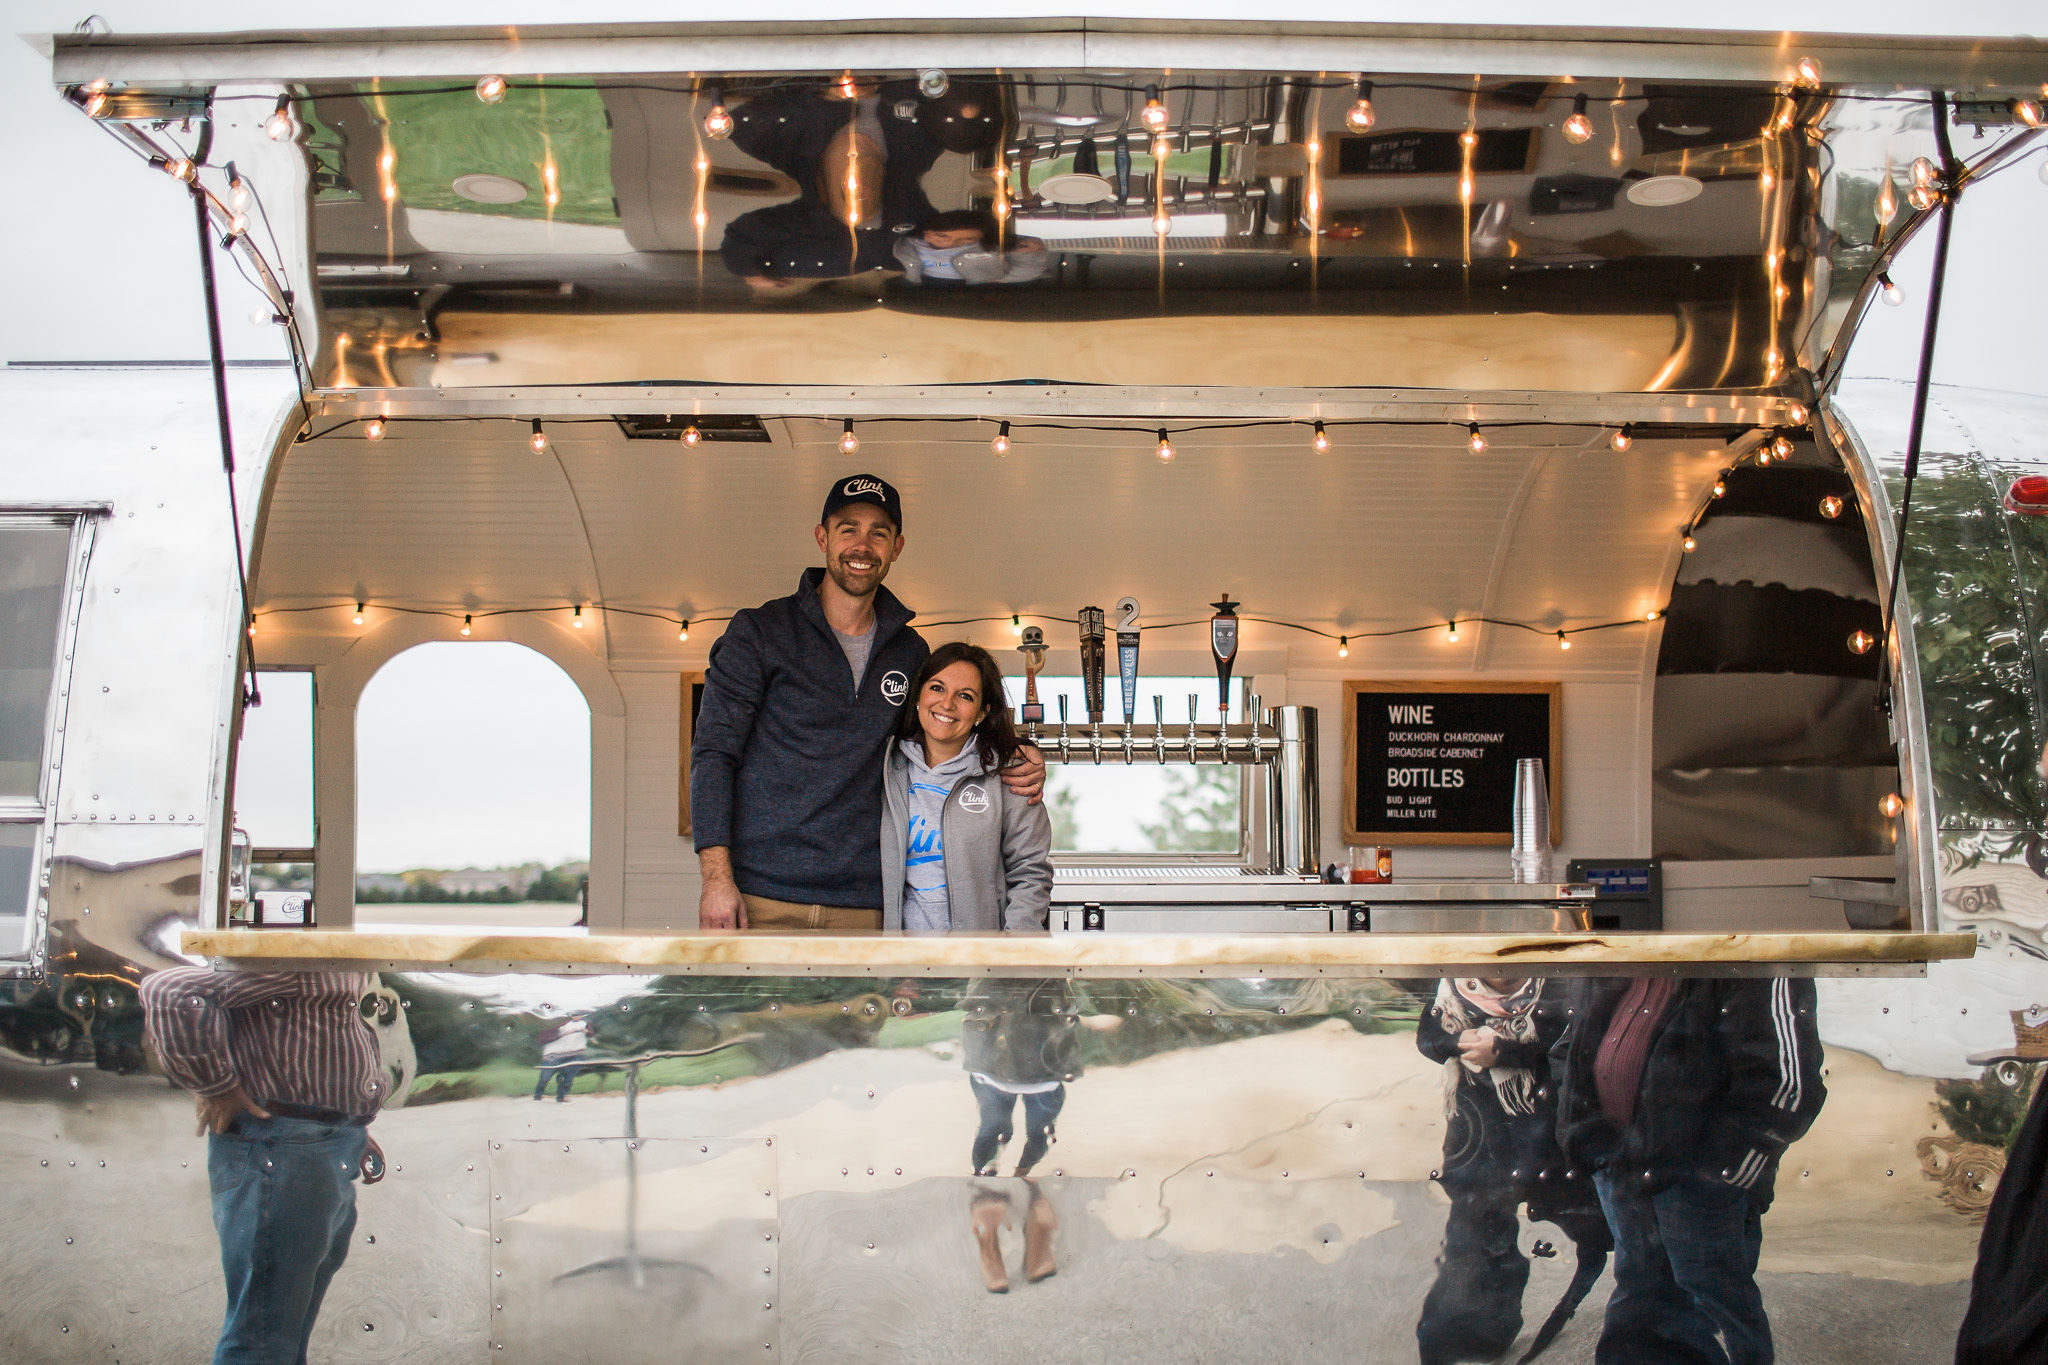 About - Find out about our story and how we put a bar into an Airstream